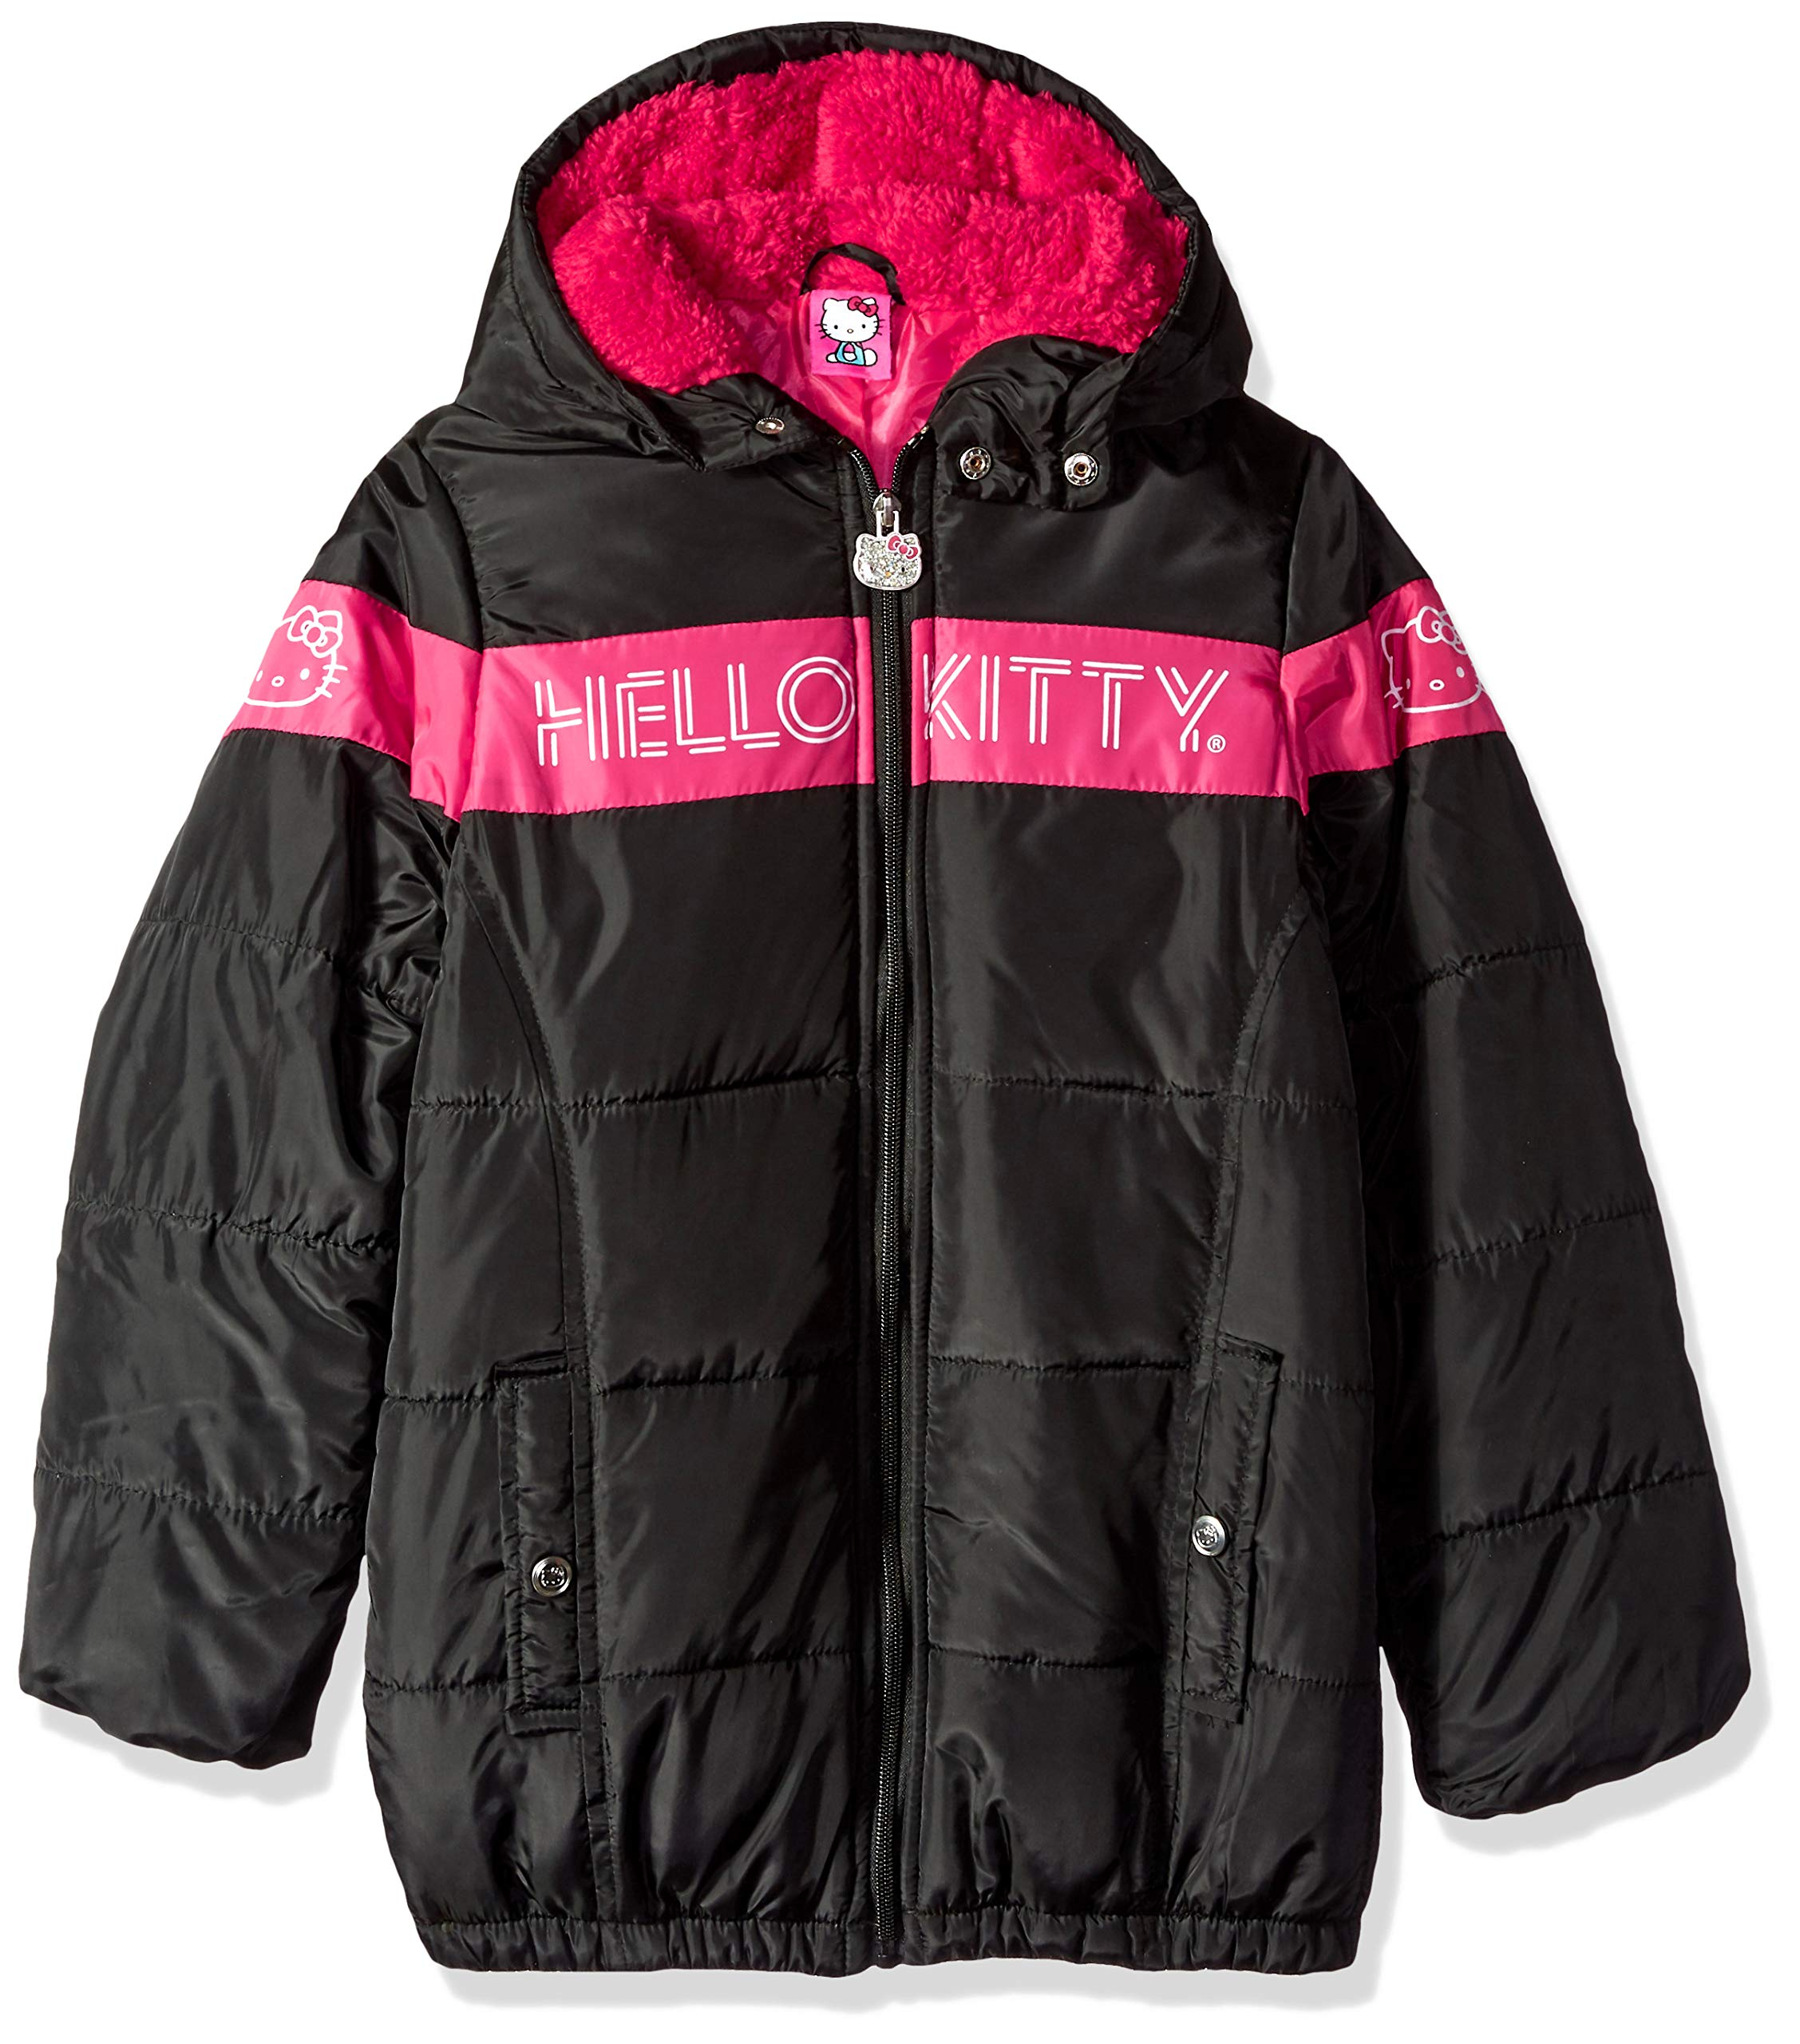 Hello Kitty Big Girls Puffer Jacket with Hood, Black/Pink, 12 by Hello Kitty